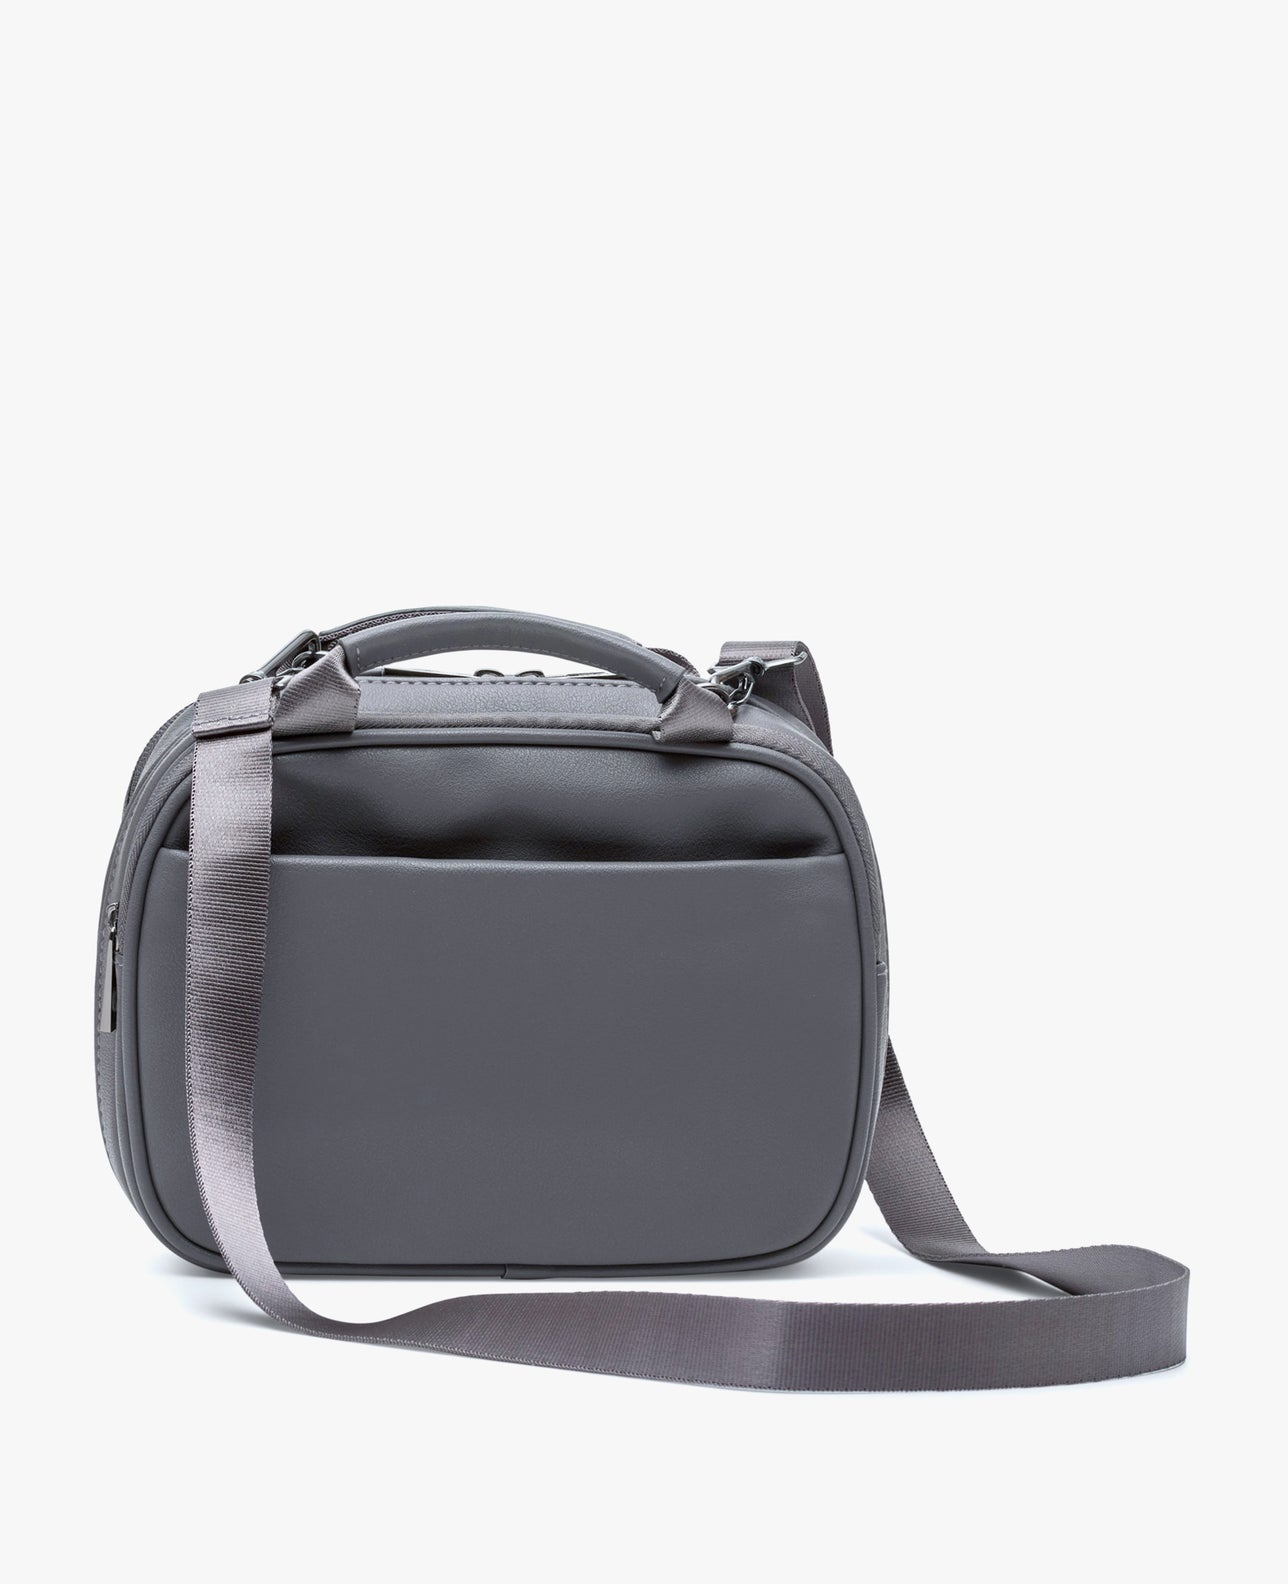 color:Charcoal Vegan Leather